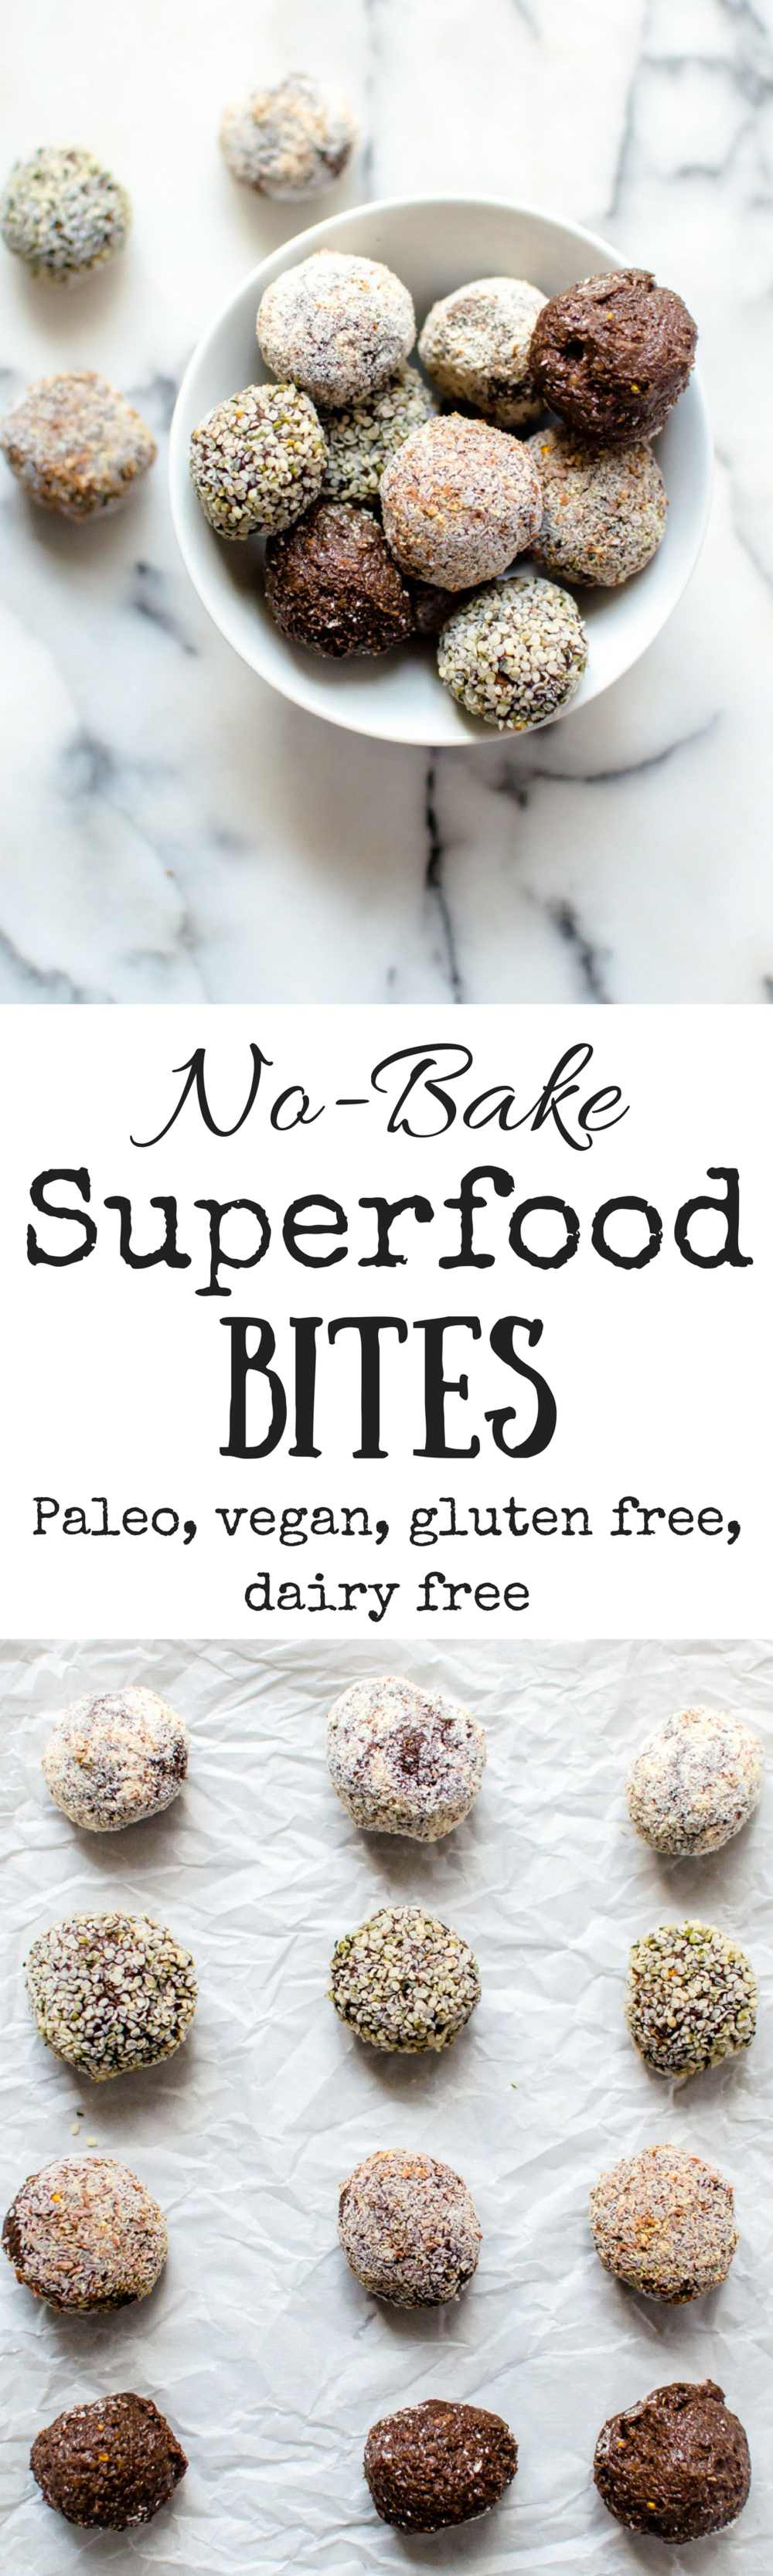 No-Bake Superfood Bites